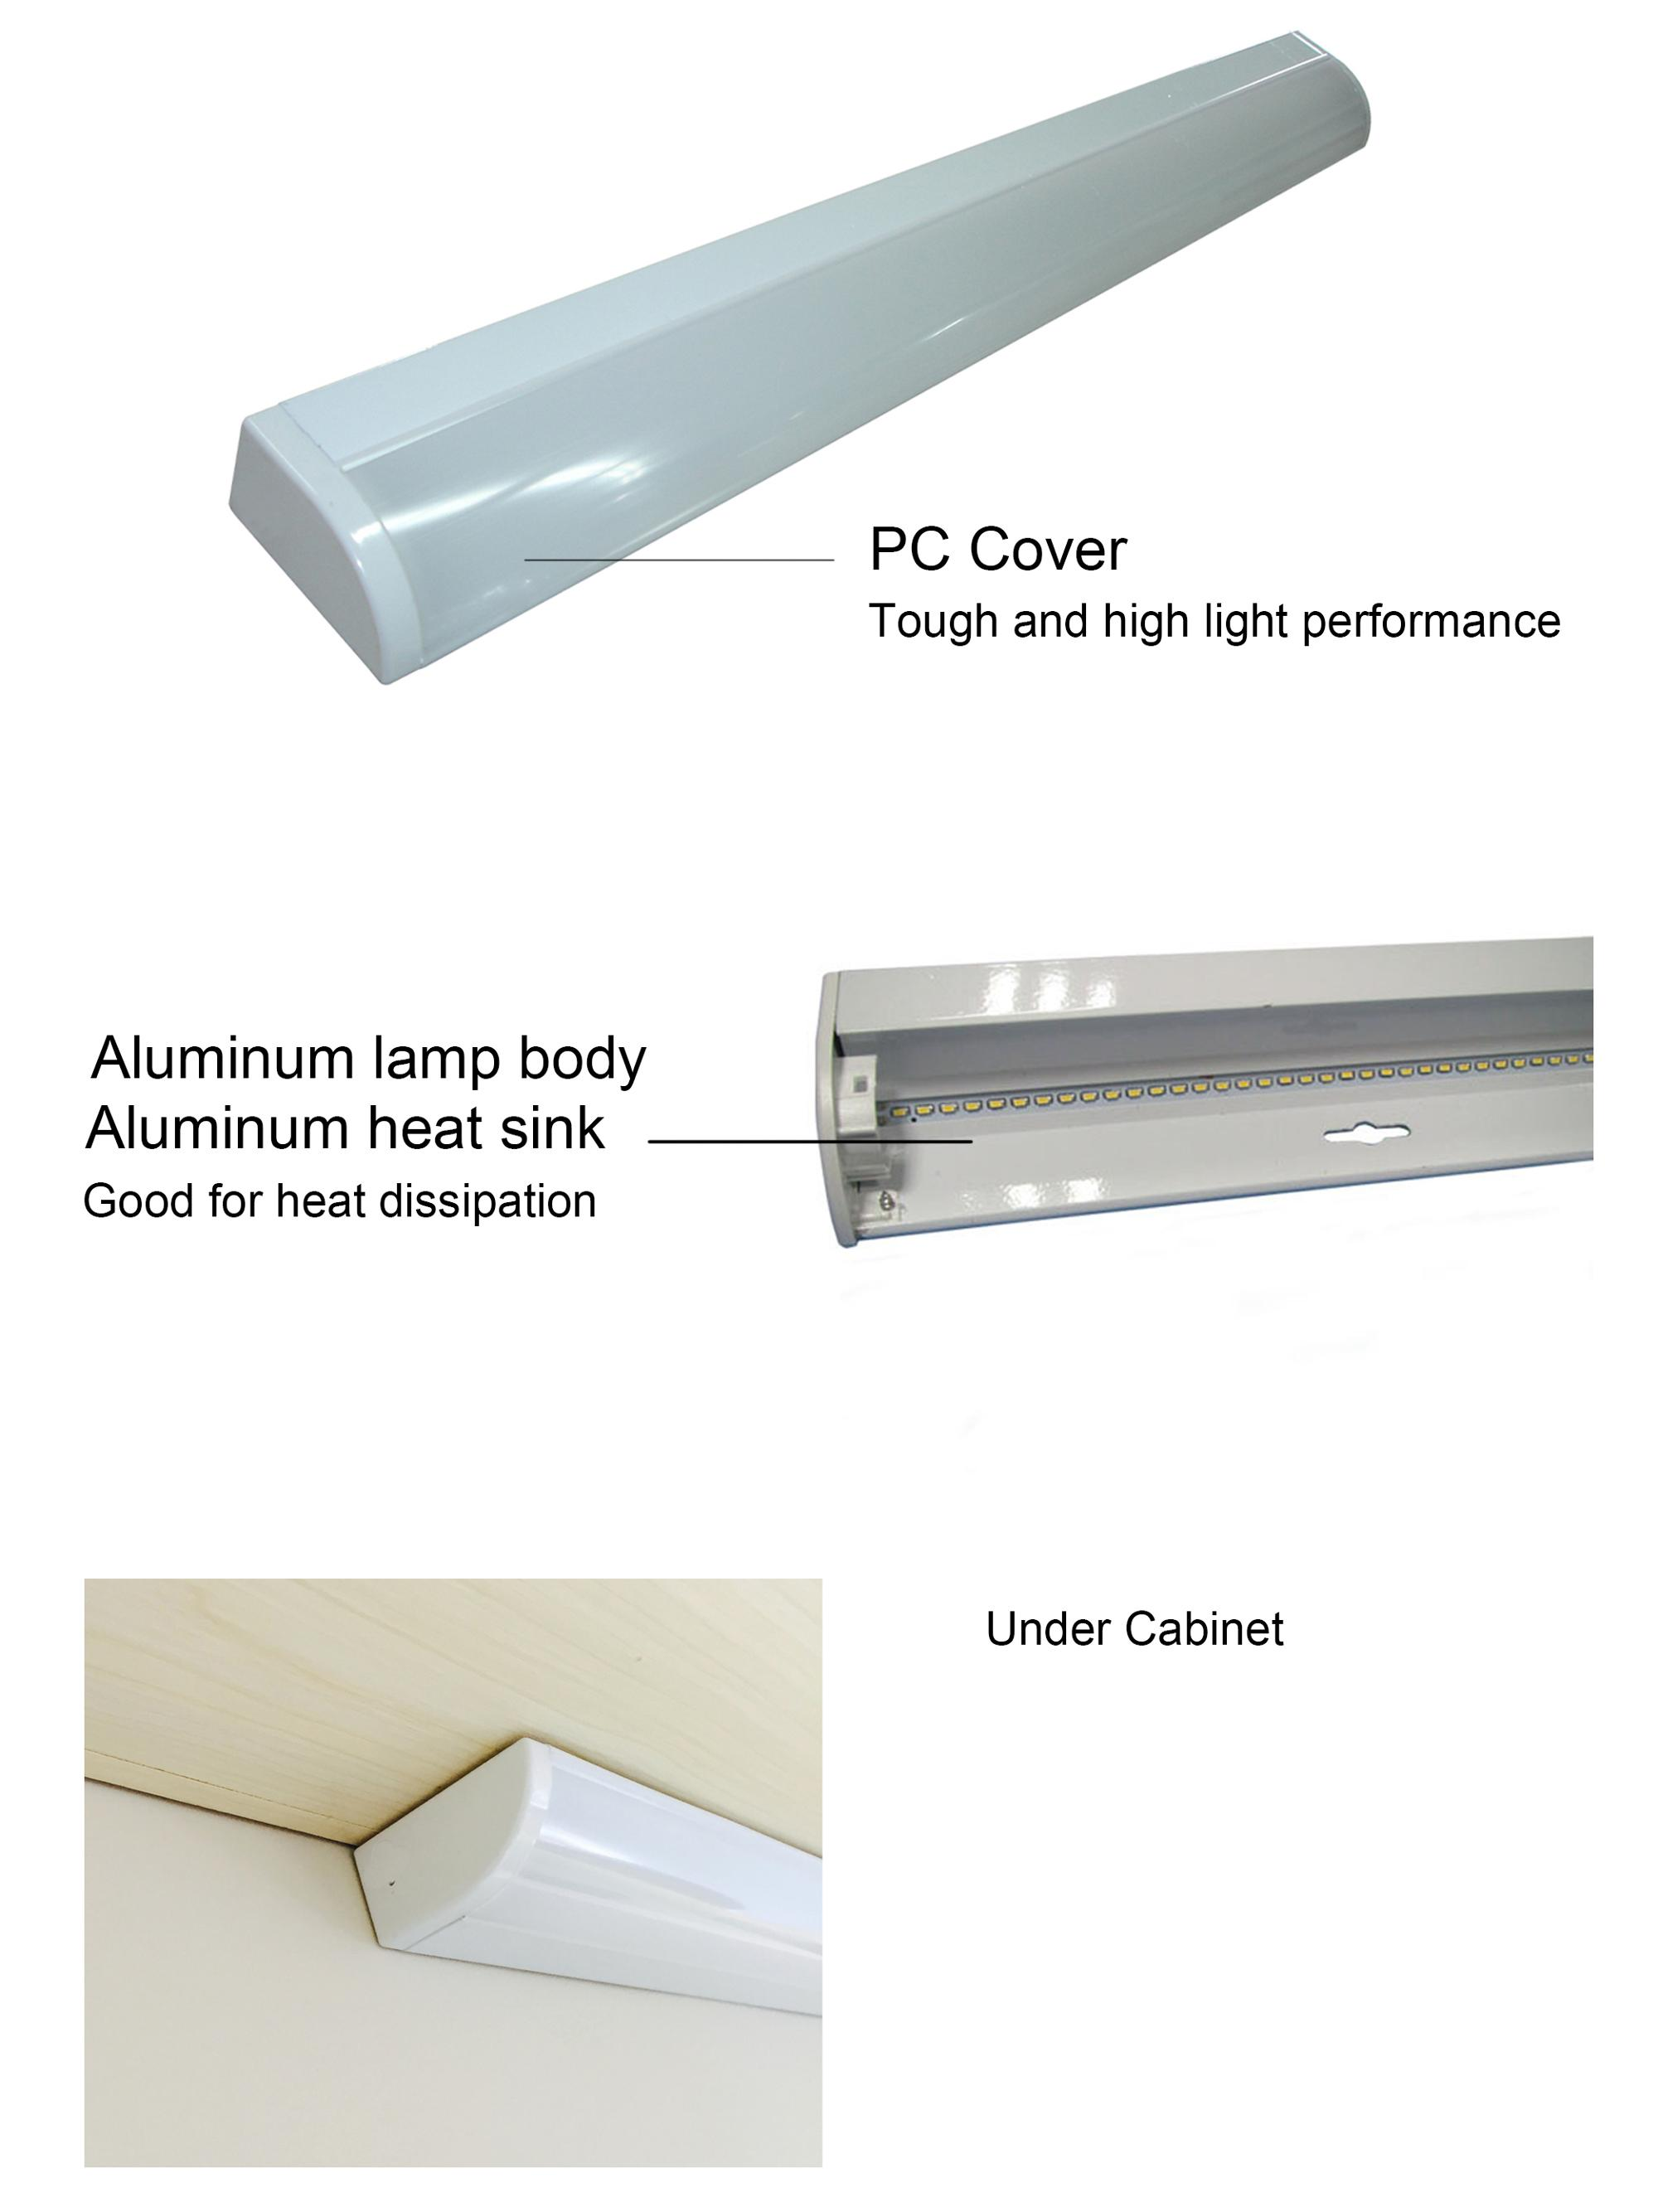 China supplier 1ft 2ft 3ft 4ft Supermarket dustproof led under cabinet lighting 10w 15w 20w emergency Usb interface closet light